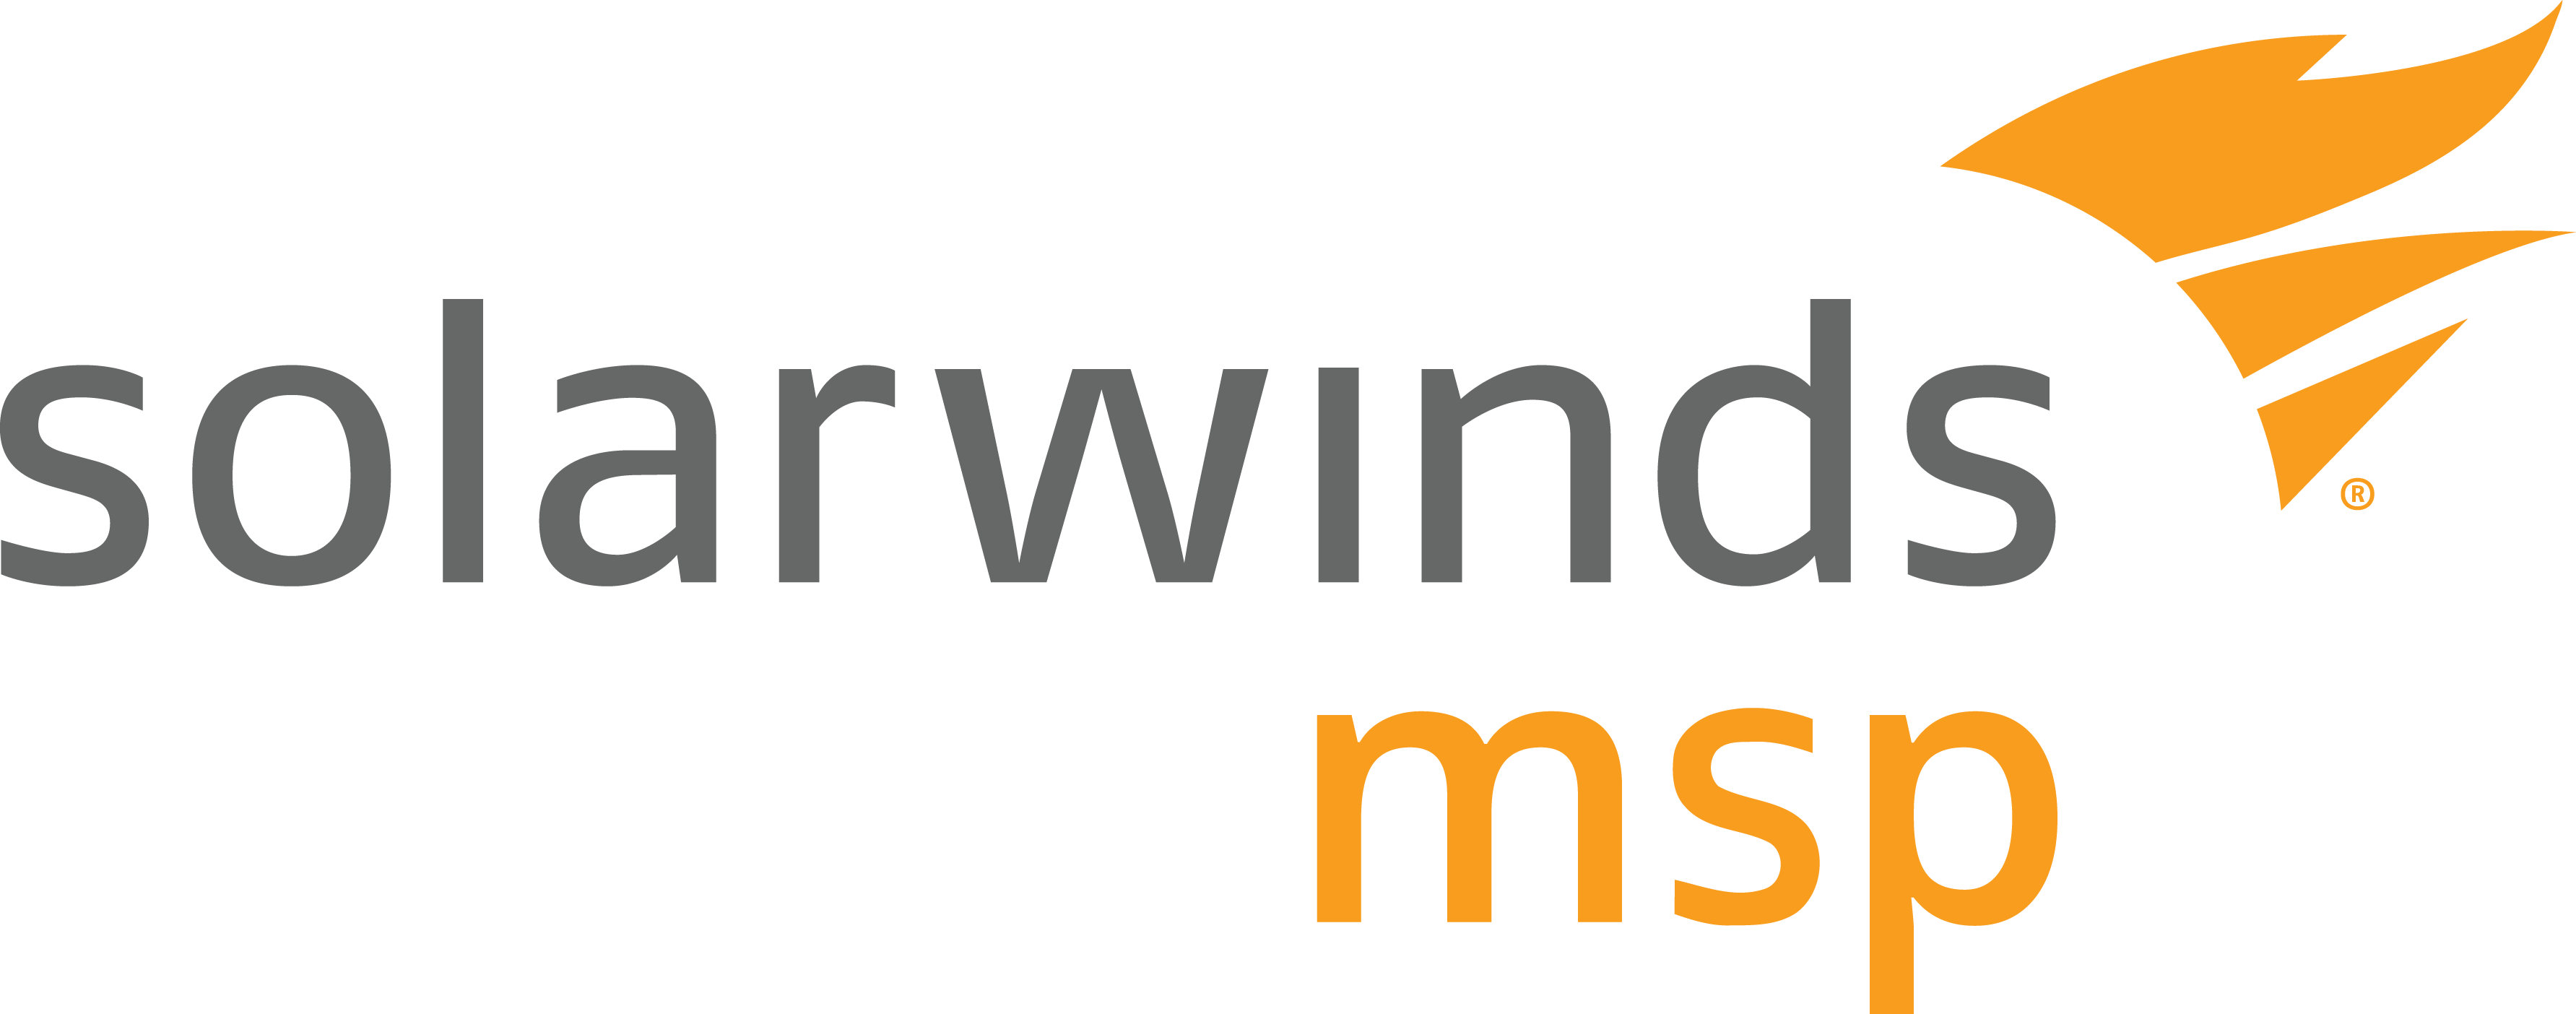 solarwinds-msp-cybersecurity